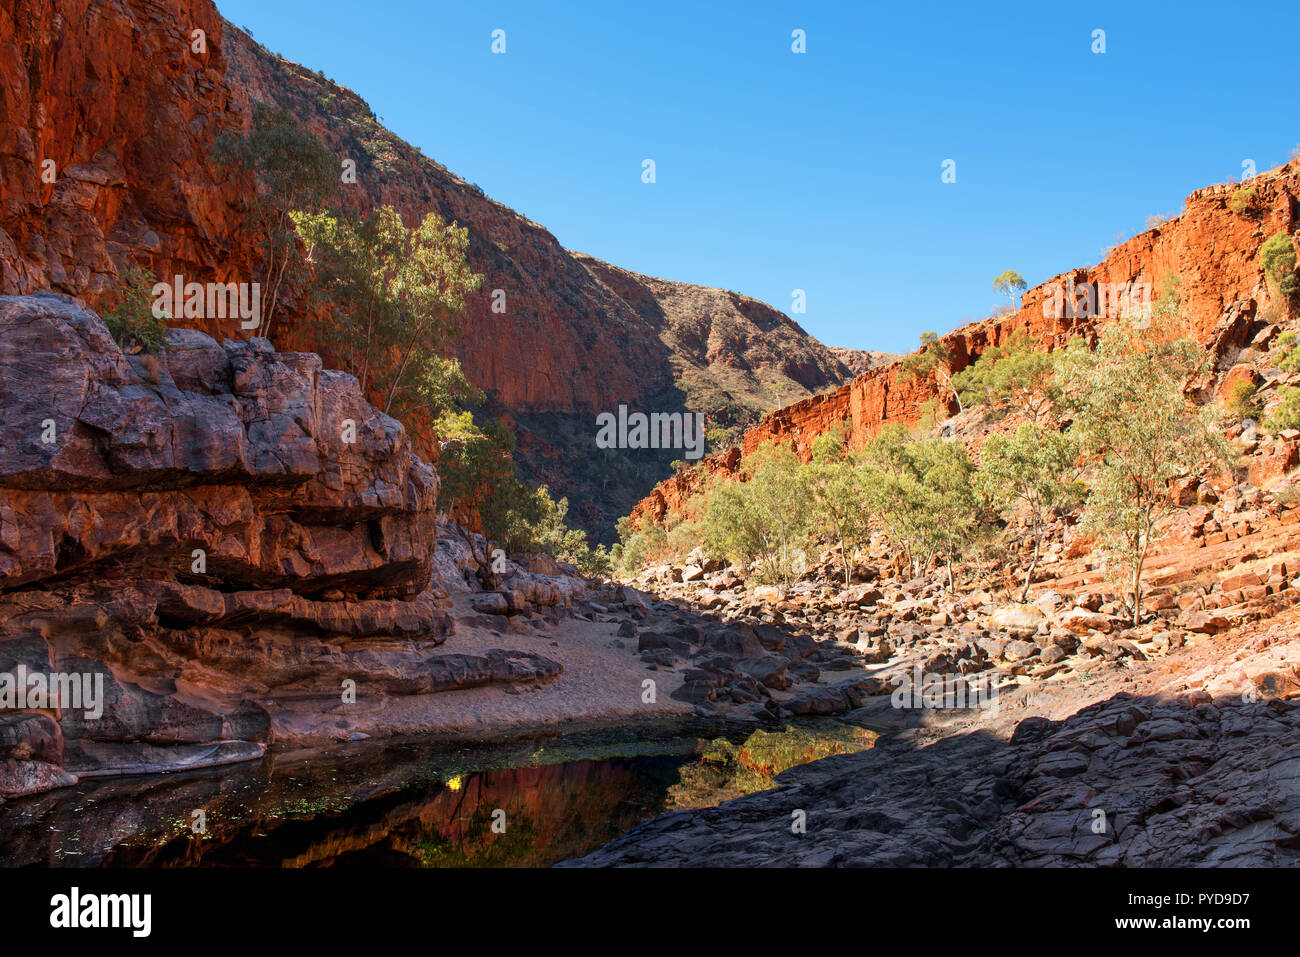 Ormiston Gorge, West MacDonnell National Park, Northern Territory, Australia - Stock Image